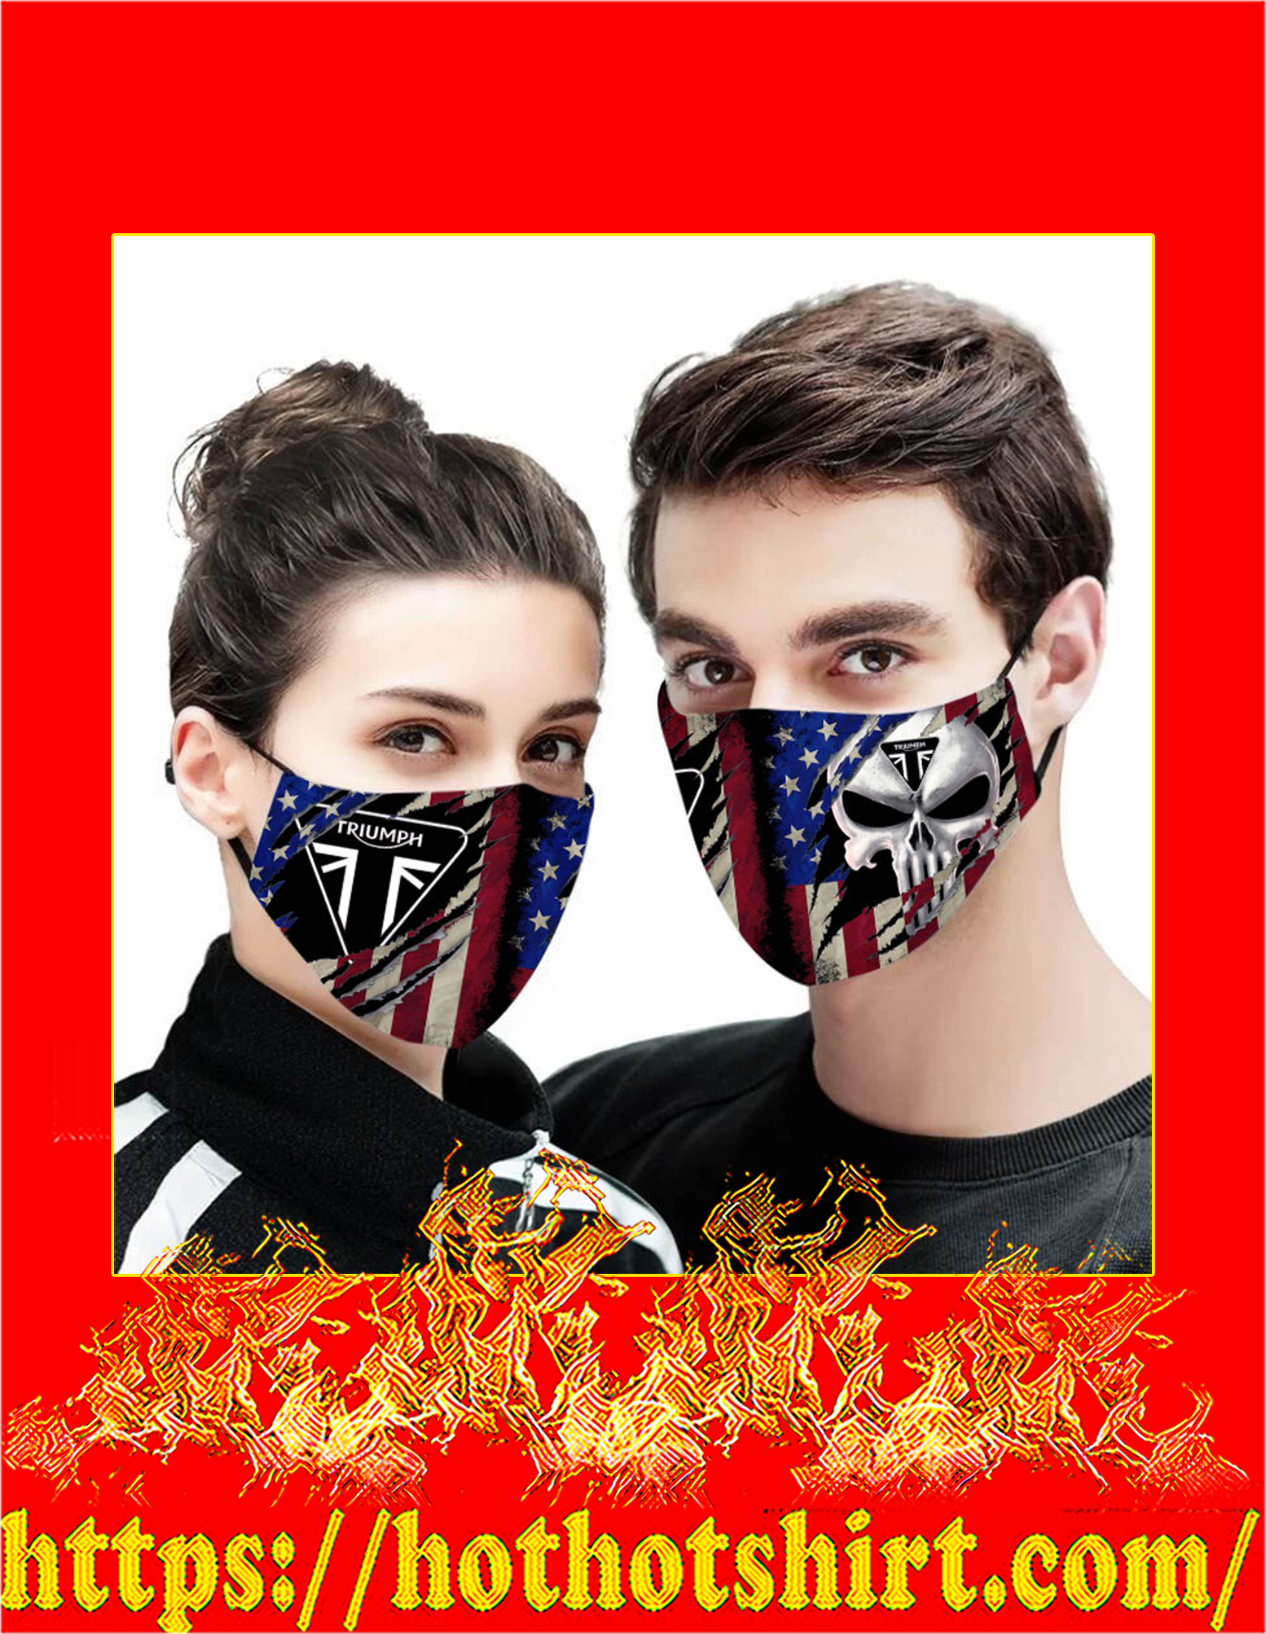 Triumph punisher skull american flag face mask - detail